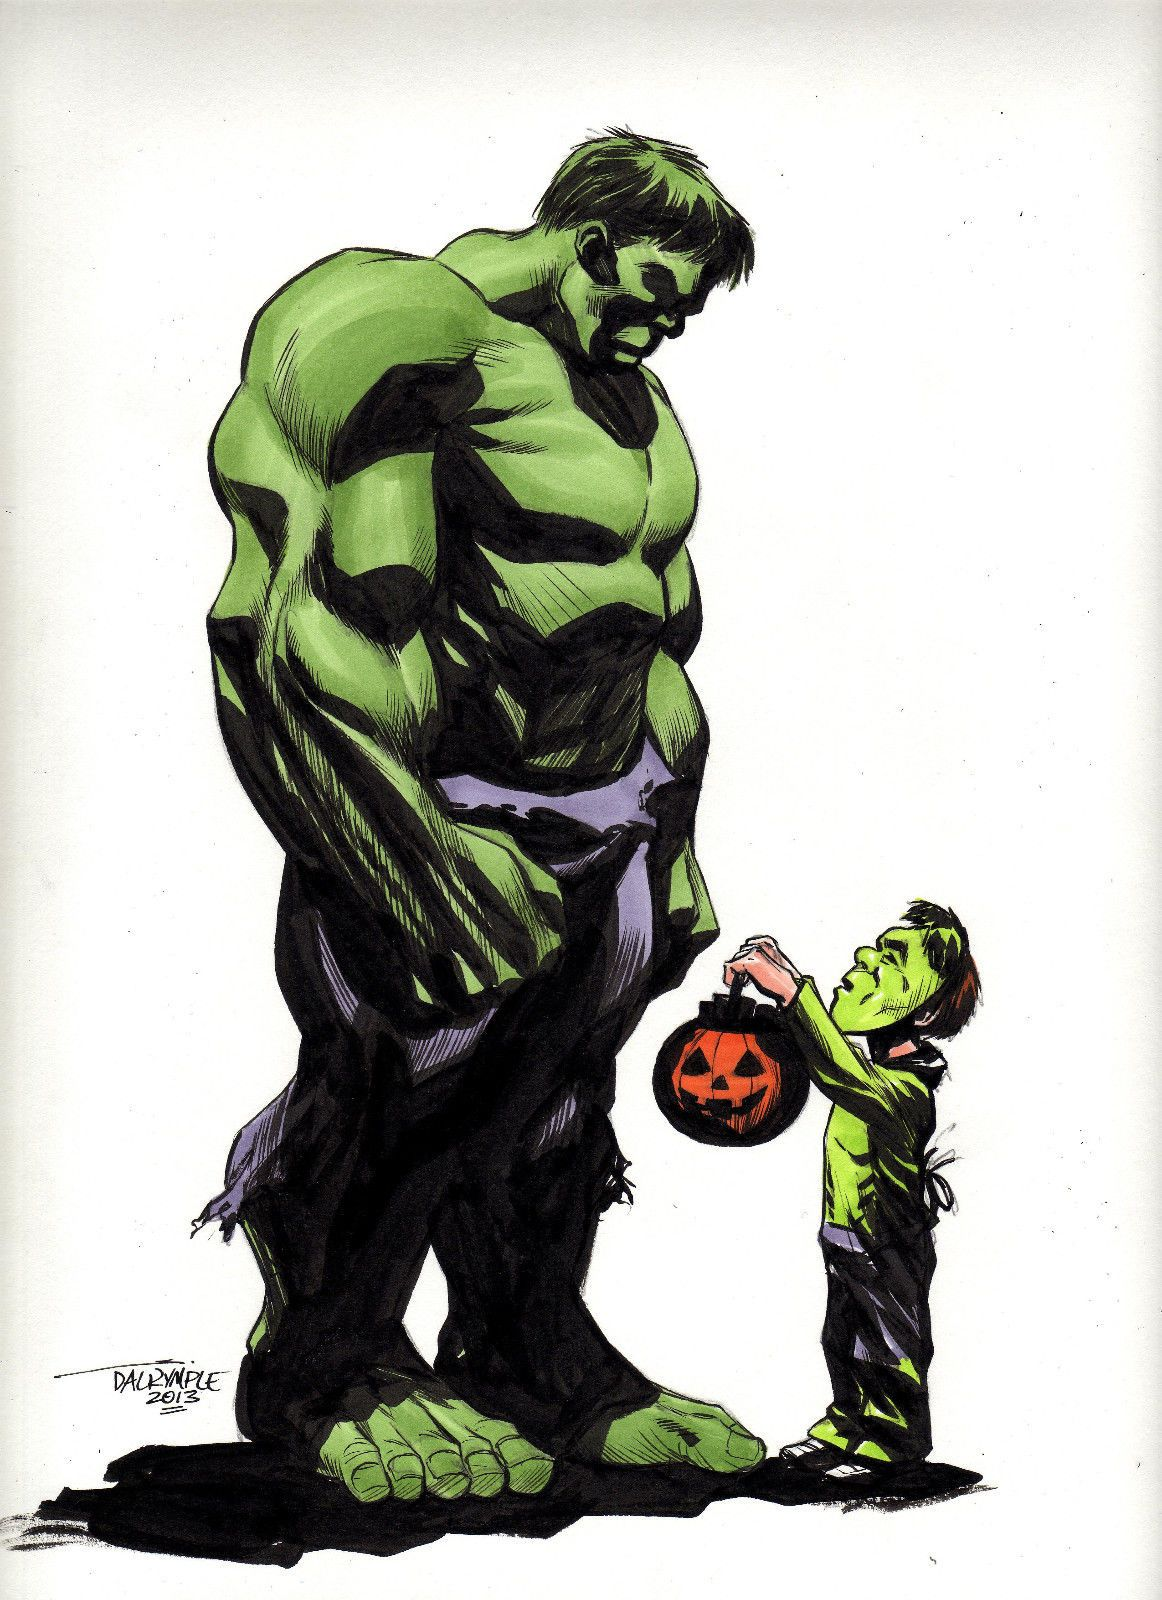 #Hulk #Fan #Art. (Incredible Hulk Halloween) By: SCOTT DALRYMPLE. (THE * 5 * STÅR * ÅWARD * OF: * AW YEAH, IT'S MAJOR ÅWESOMENESS!!!™)[THANK Ü 4 PINNING!!!<·><]<©>ÅÅÅ+(OB4E)